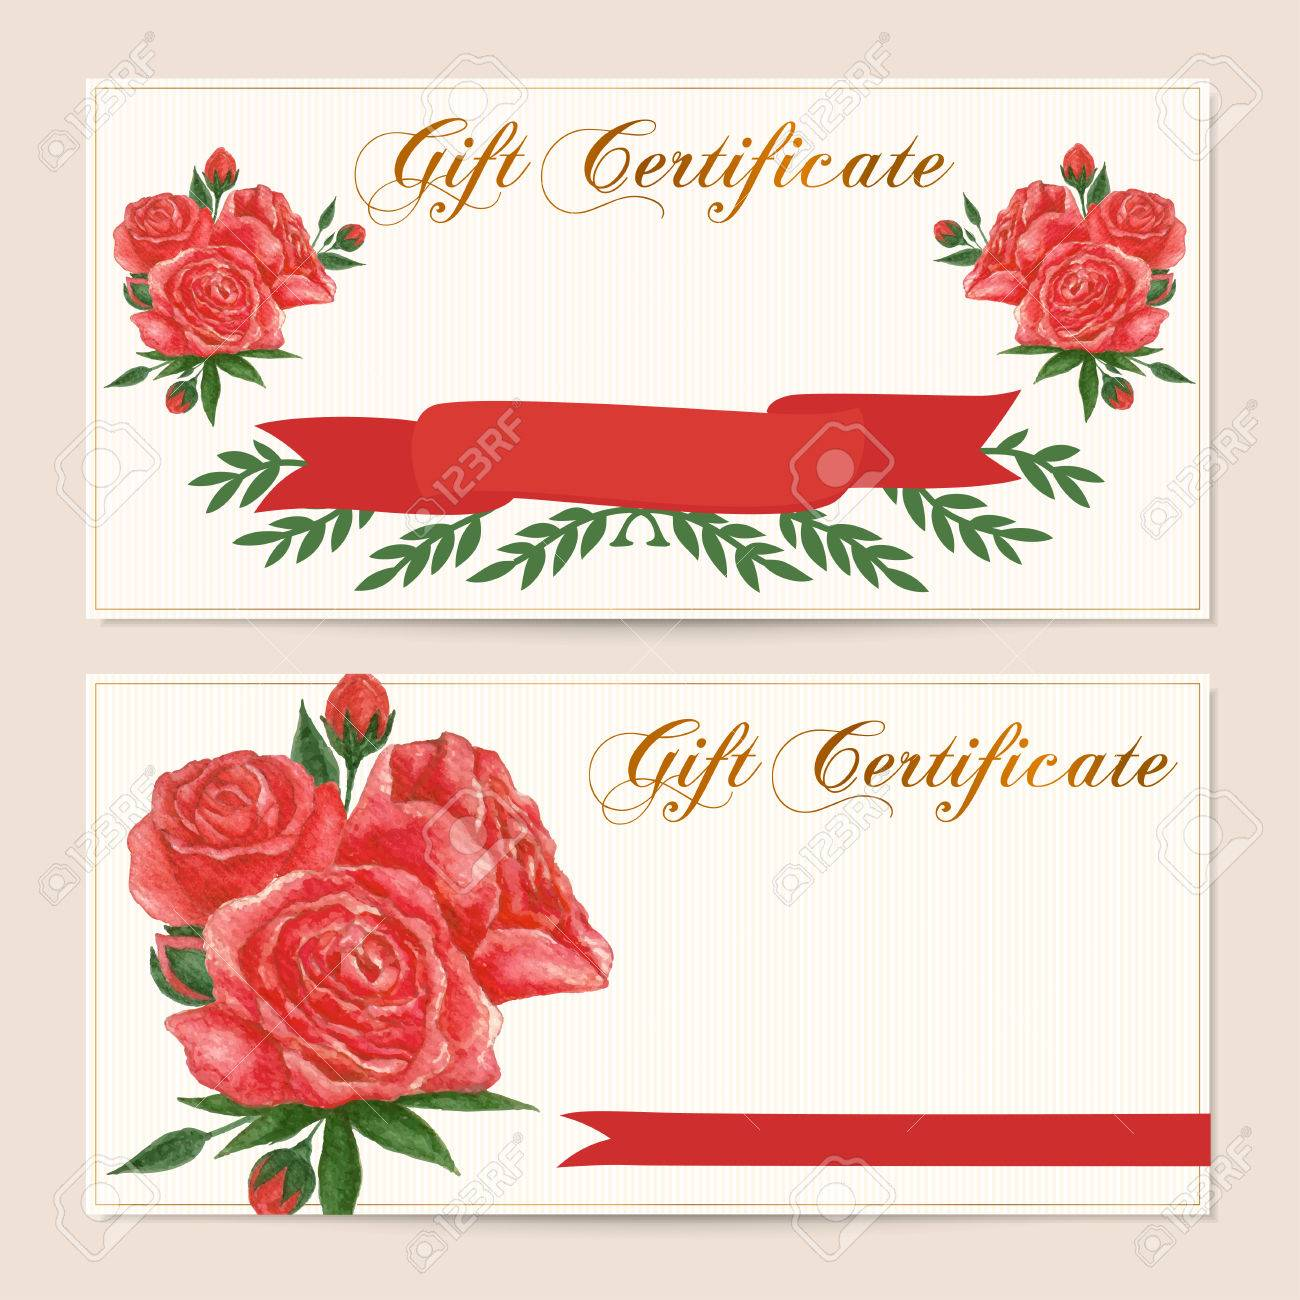 Gift certificate voucher coupon reward gift card template gift certificate voucher coupon reward gift card template with red vintage rose flowers yadclub Images